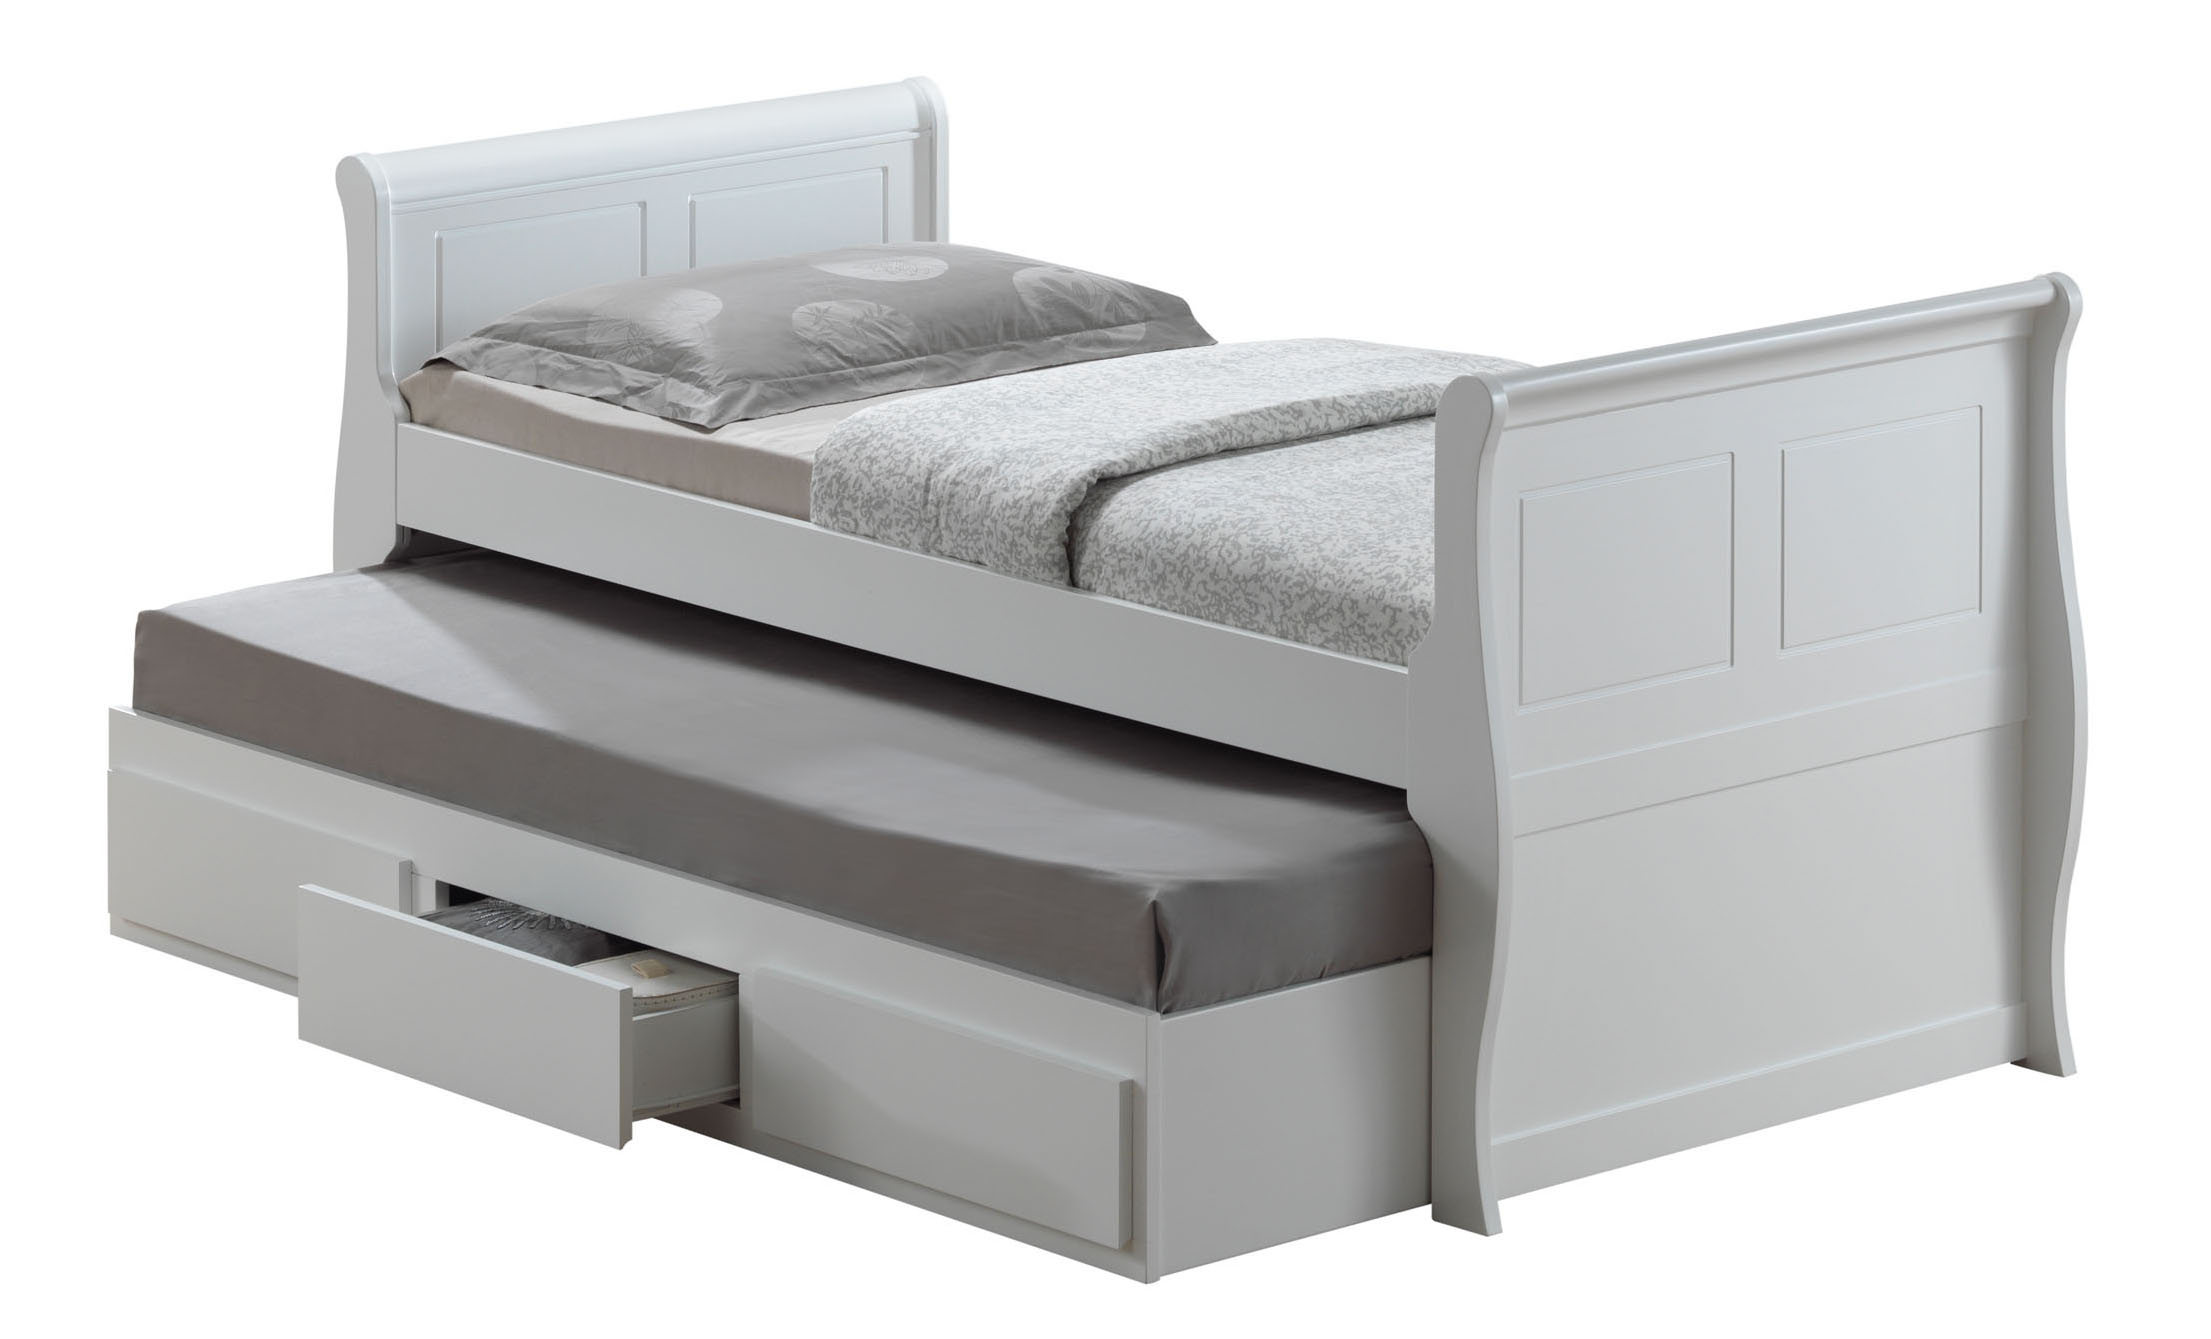 Joseph white wooden oasis guest bed single white guest bed mattresses ebay Bed with mattress